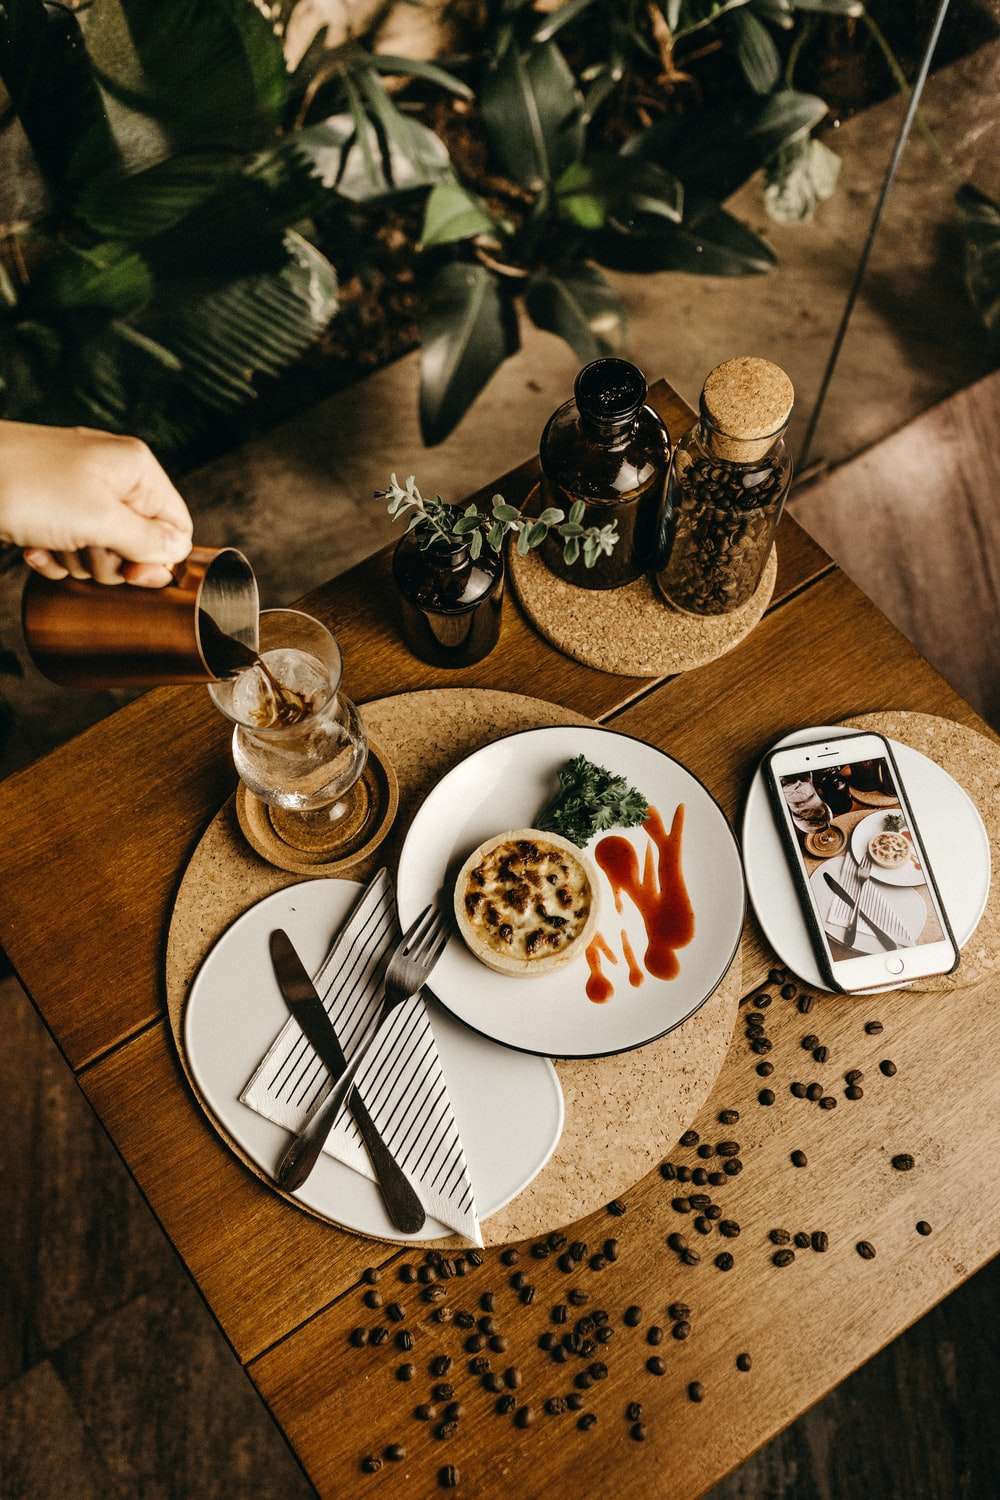 food photography of baked pastry beside stainless steel fork and dinner knife